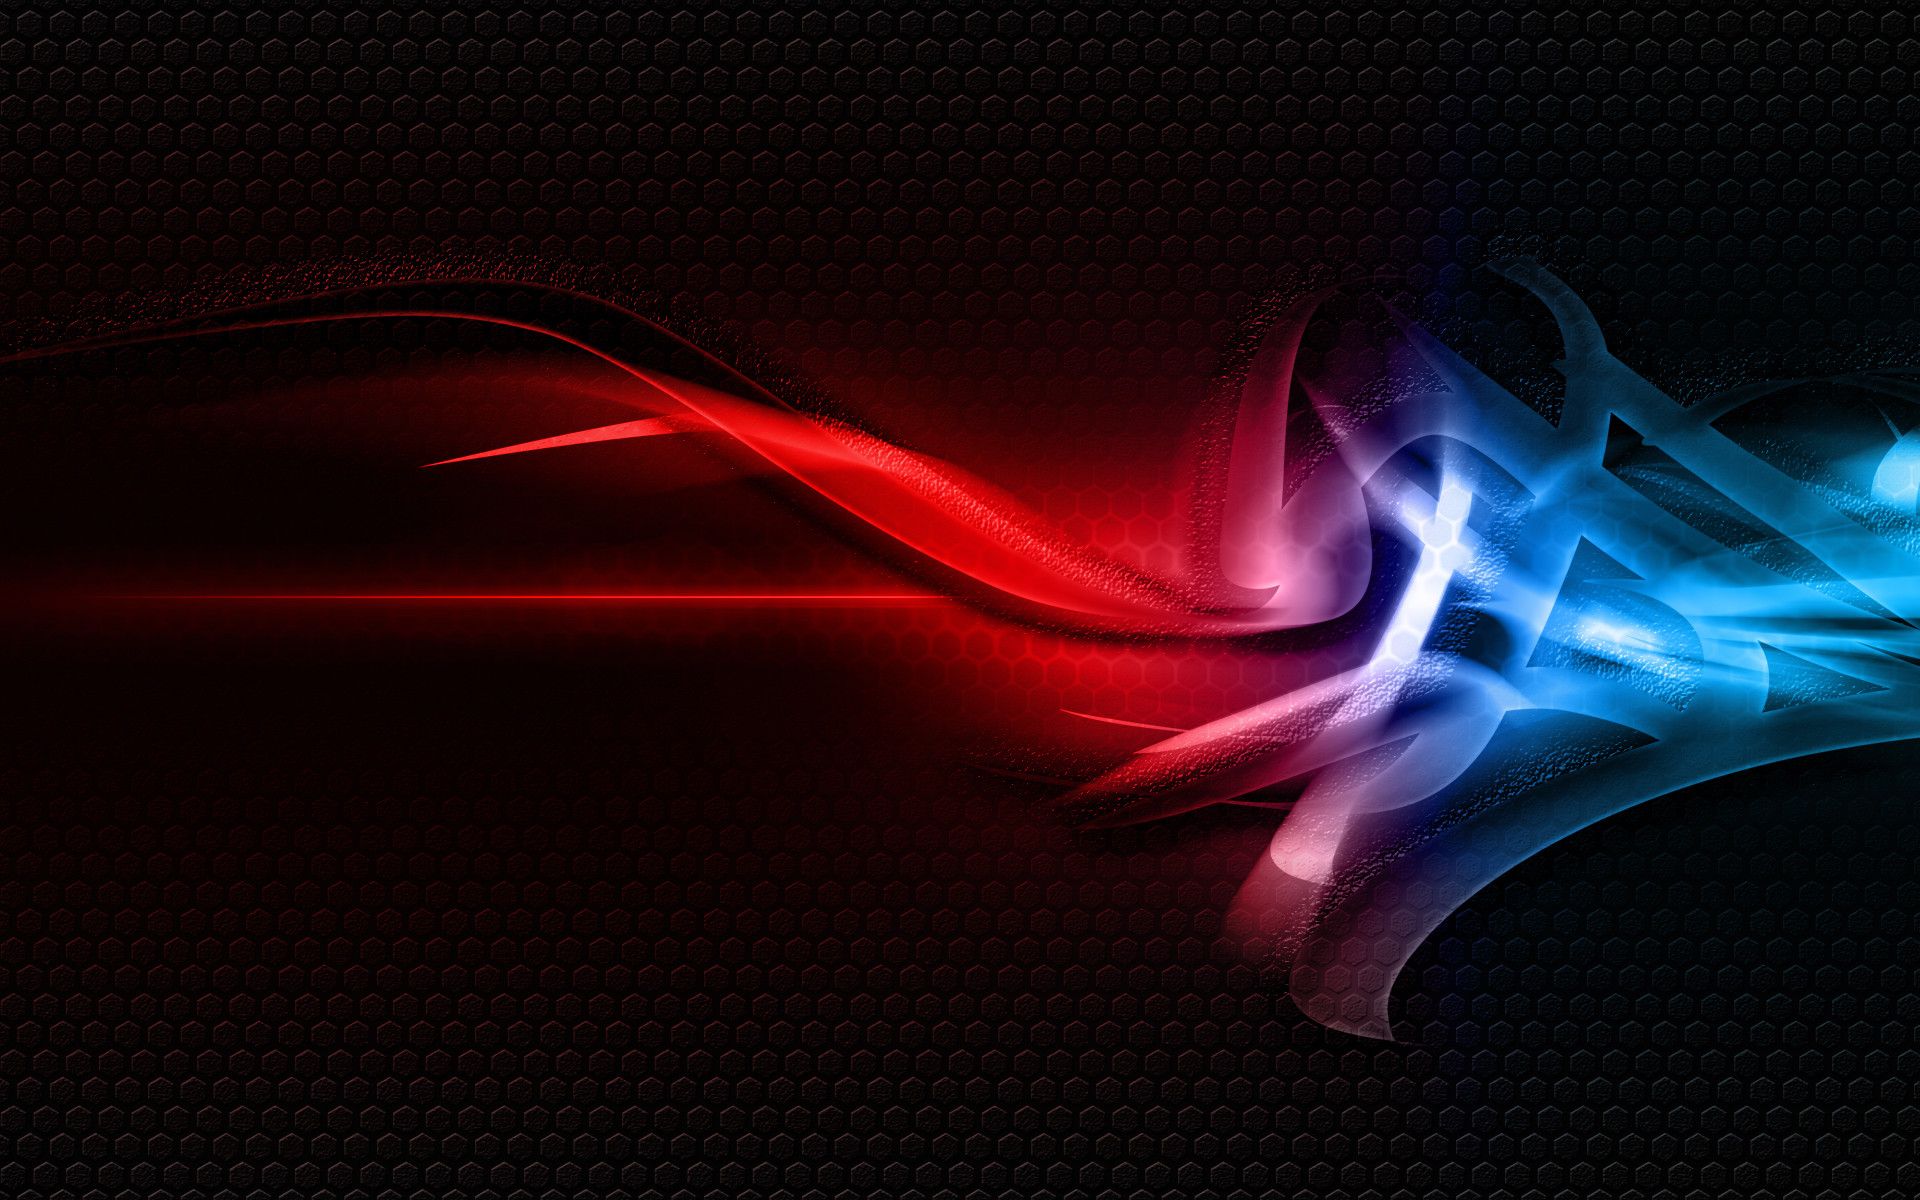 … abstract wallpapers hd; blue and red wallpaper wallpapersafari …